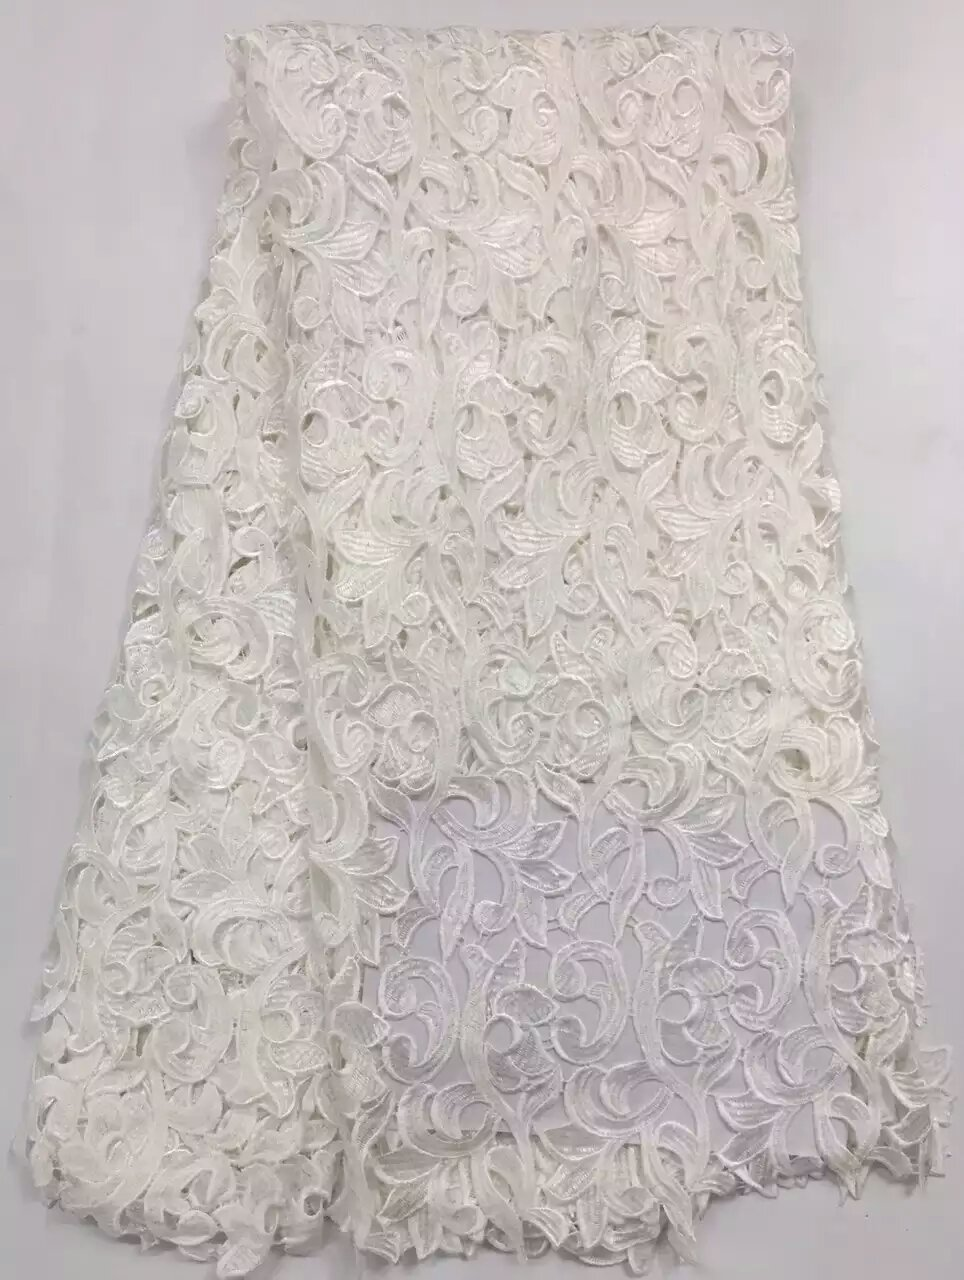 Online get cheap white lace fabric for wedding dresses aliexpress white cord lace 5yardlot african cord lace fabrics high quality 2017 african lace fabric white for sewing wedding dresses ombrellifo Choice Image